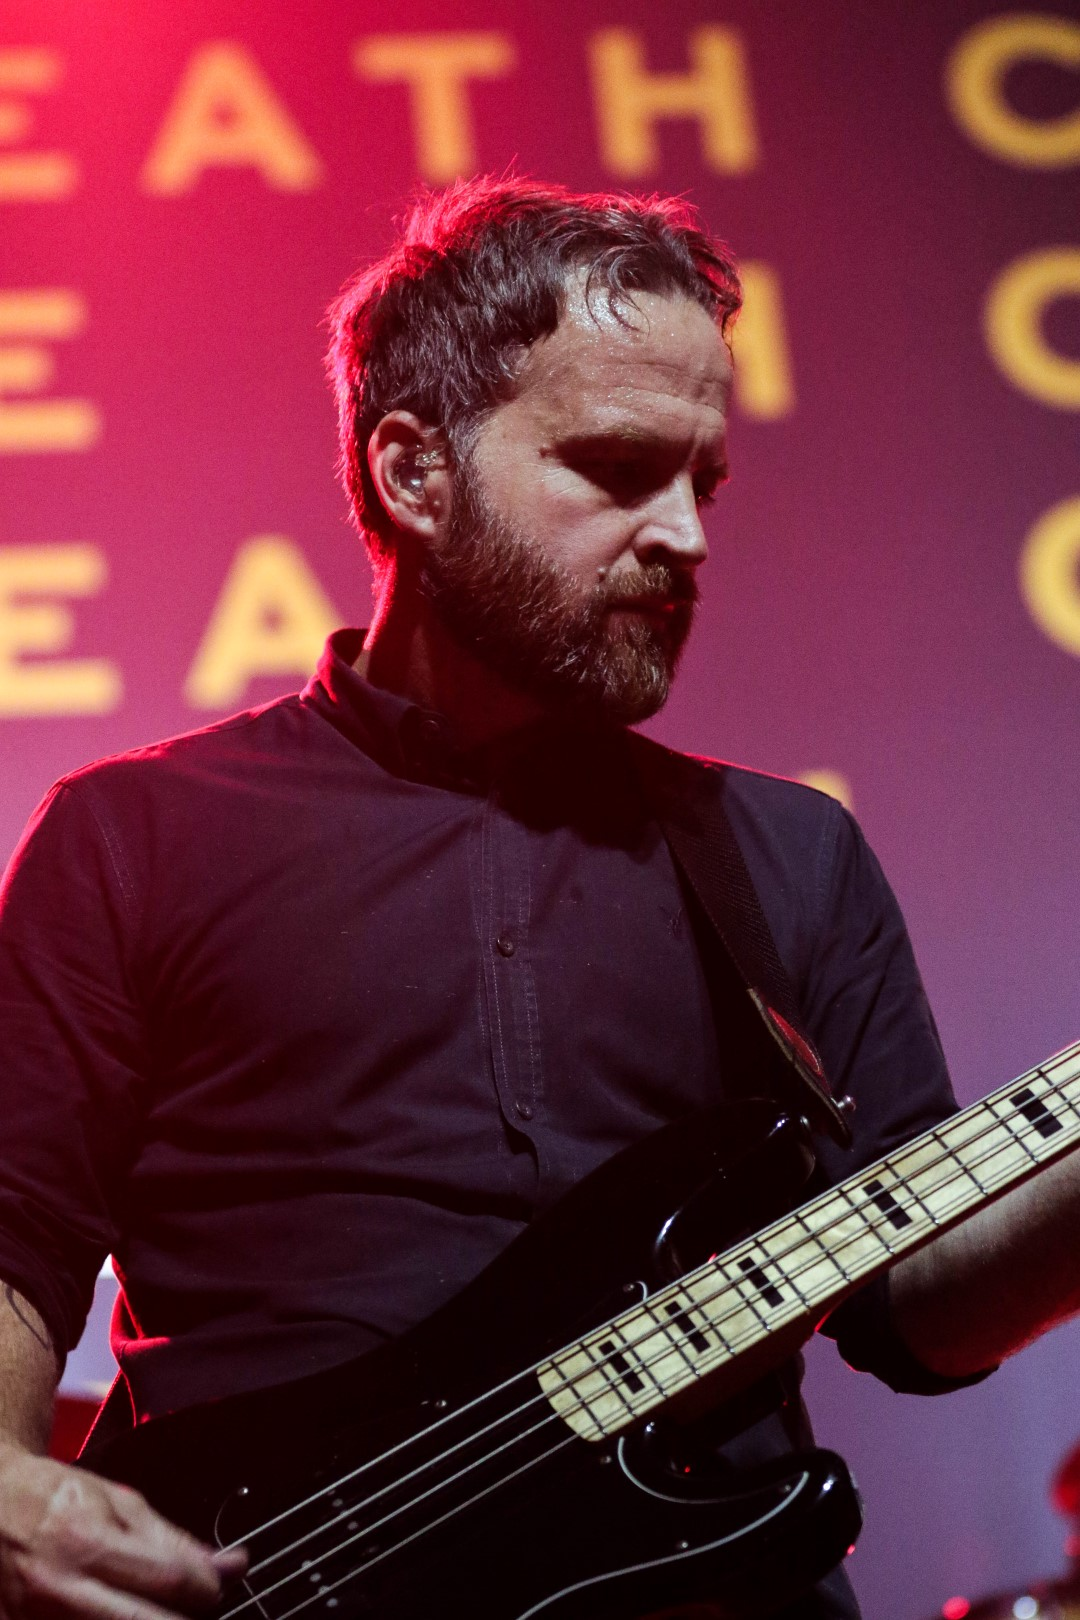 Death Cab for Cutie Bassist